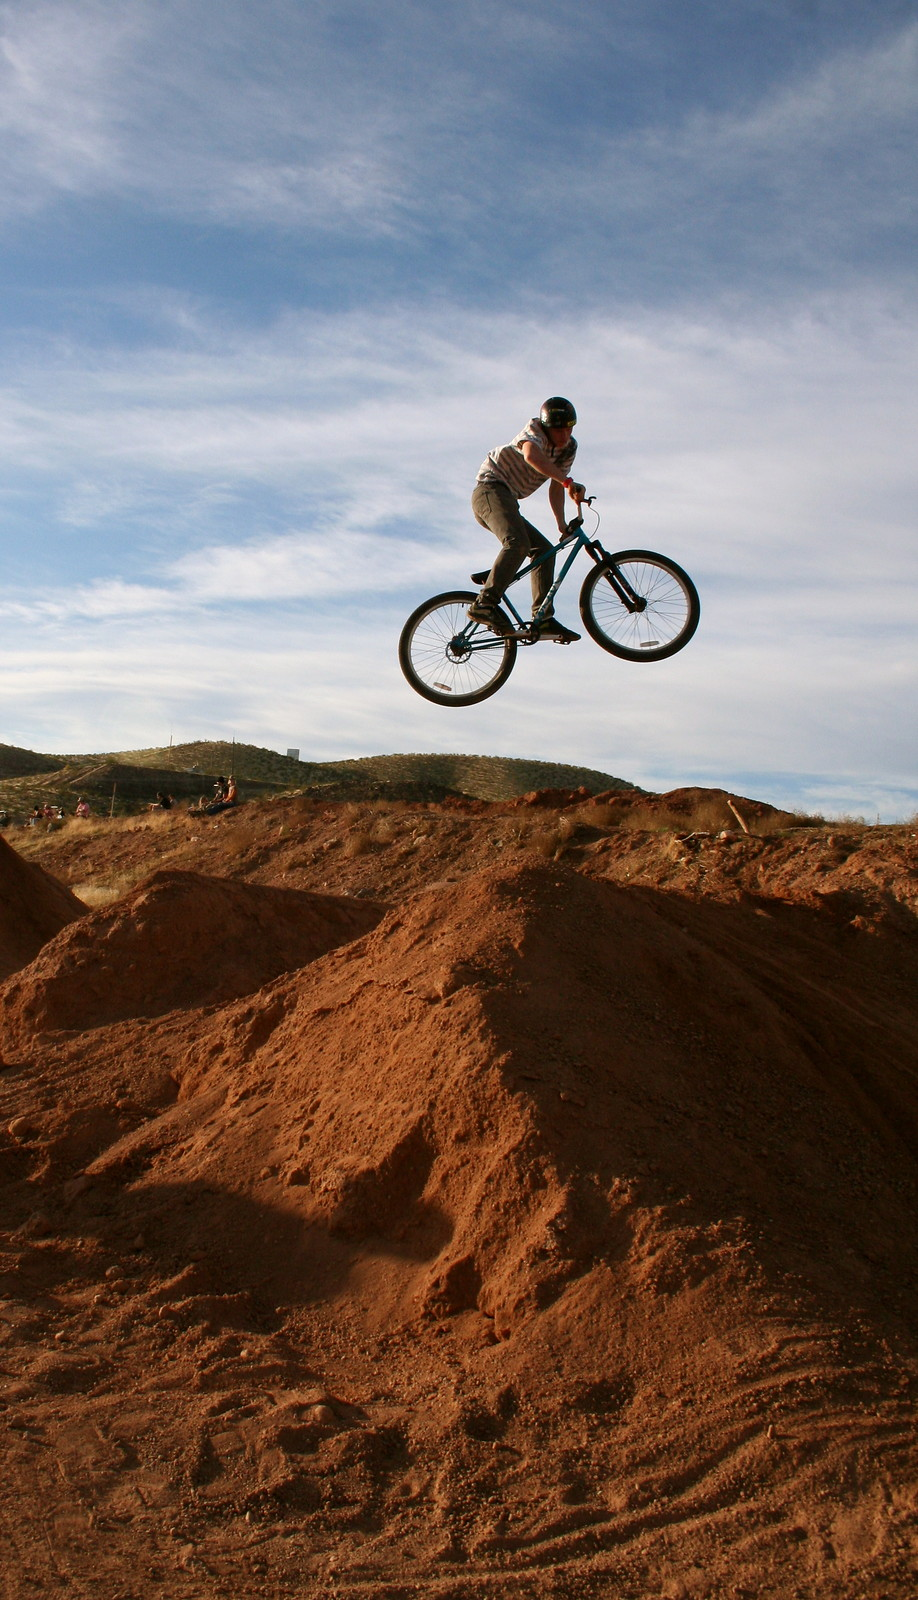 My best whip in a pic! - Studson - Mountain Biking Pictures - Vital MTB